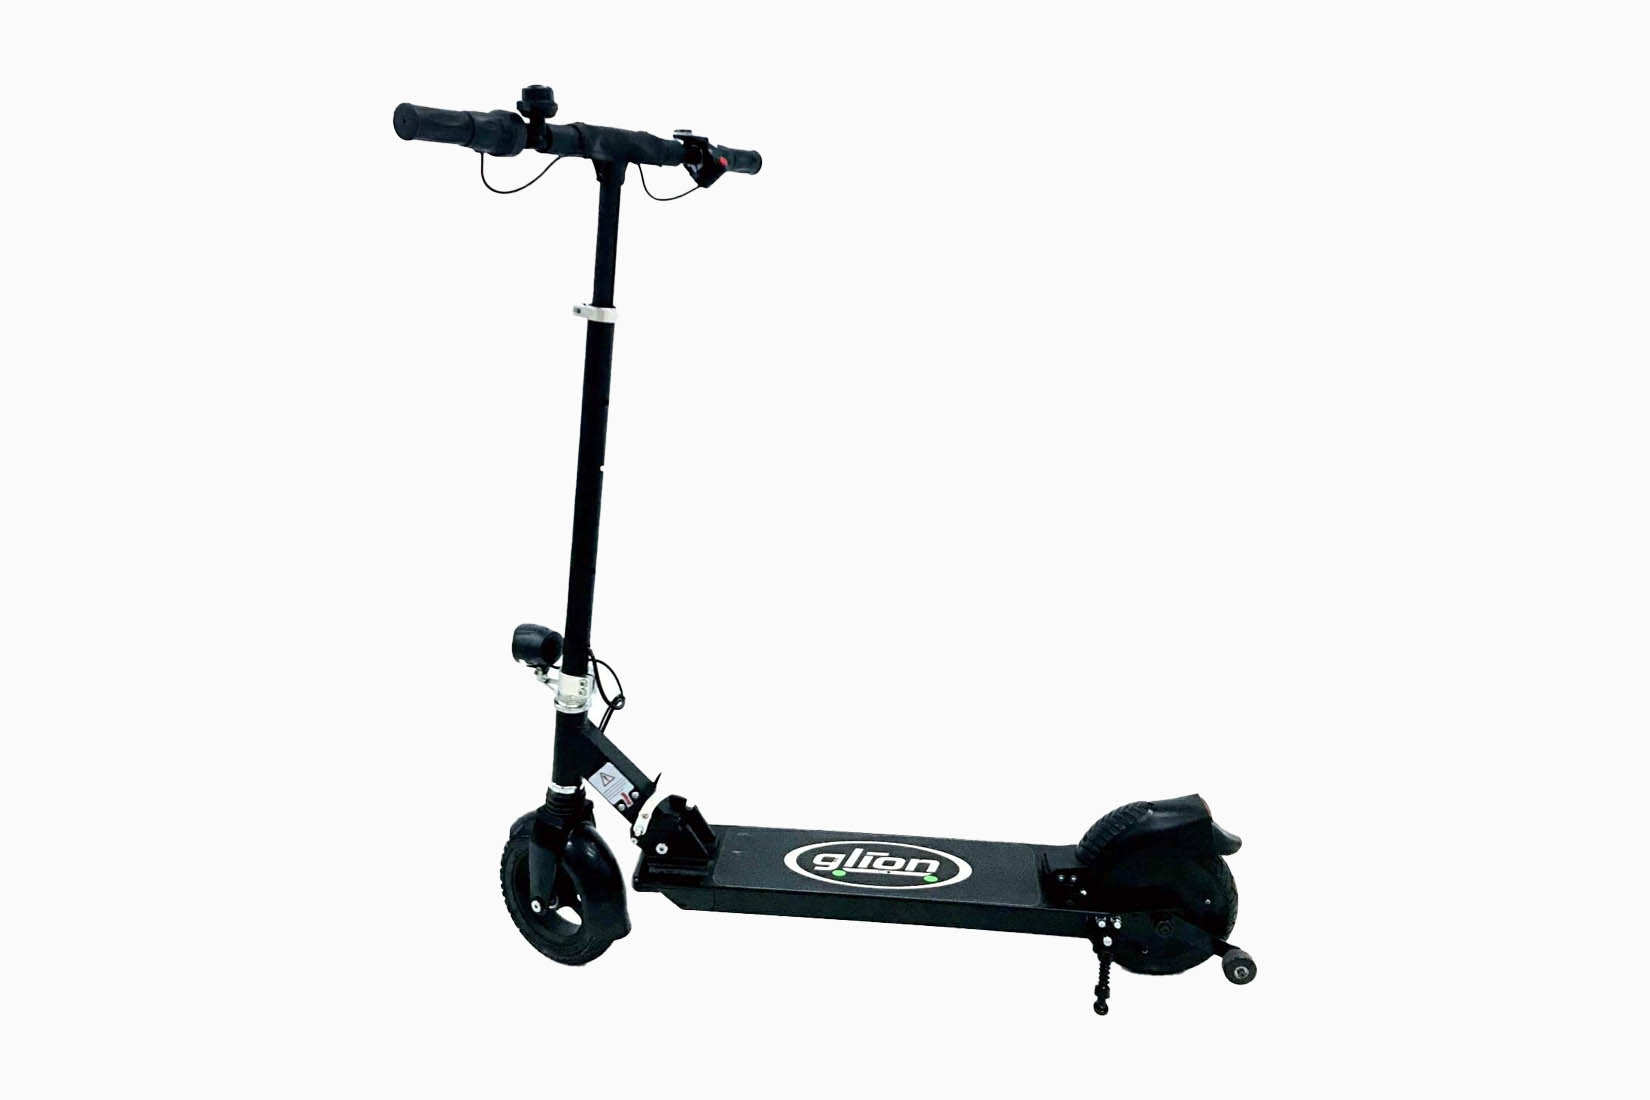 best electric scooter glion dolly review - Luxe Digital